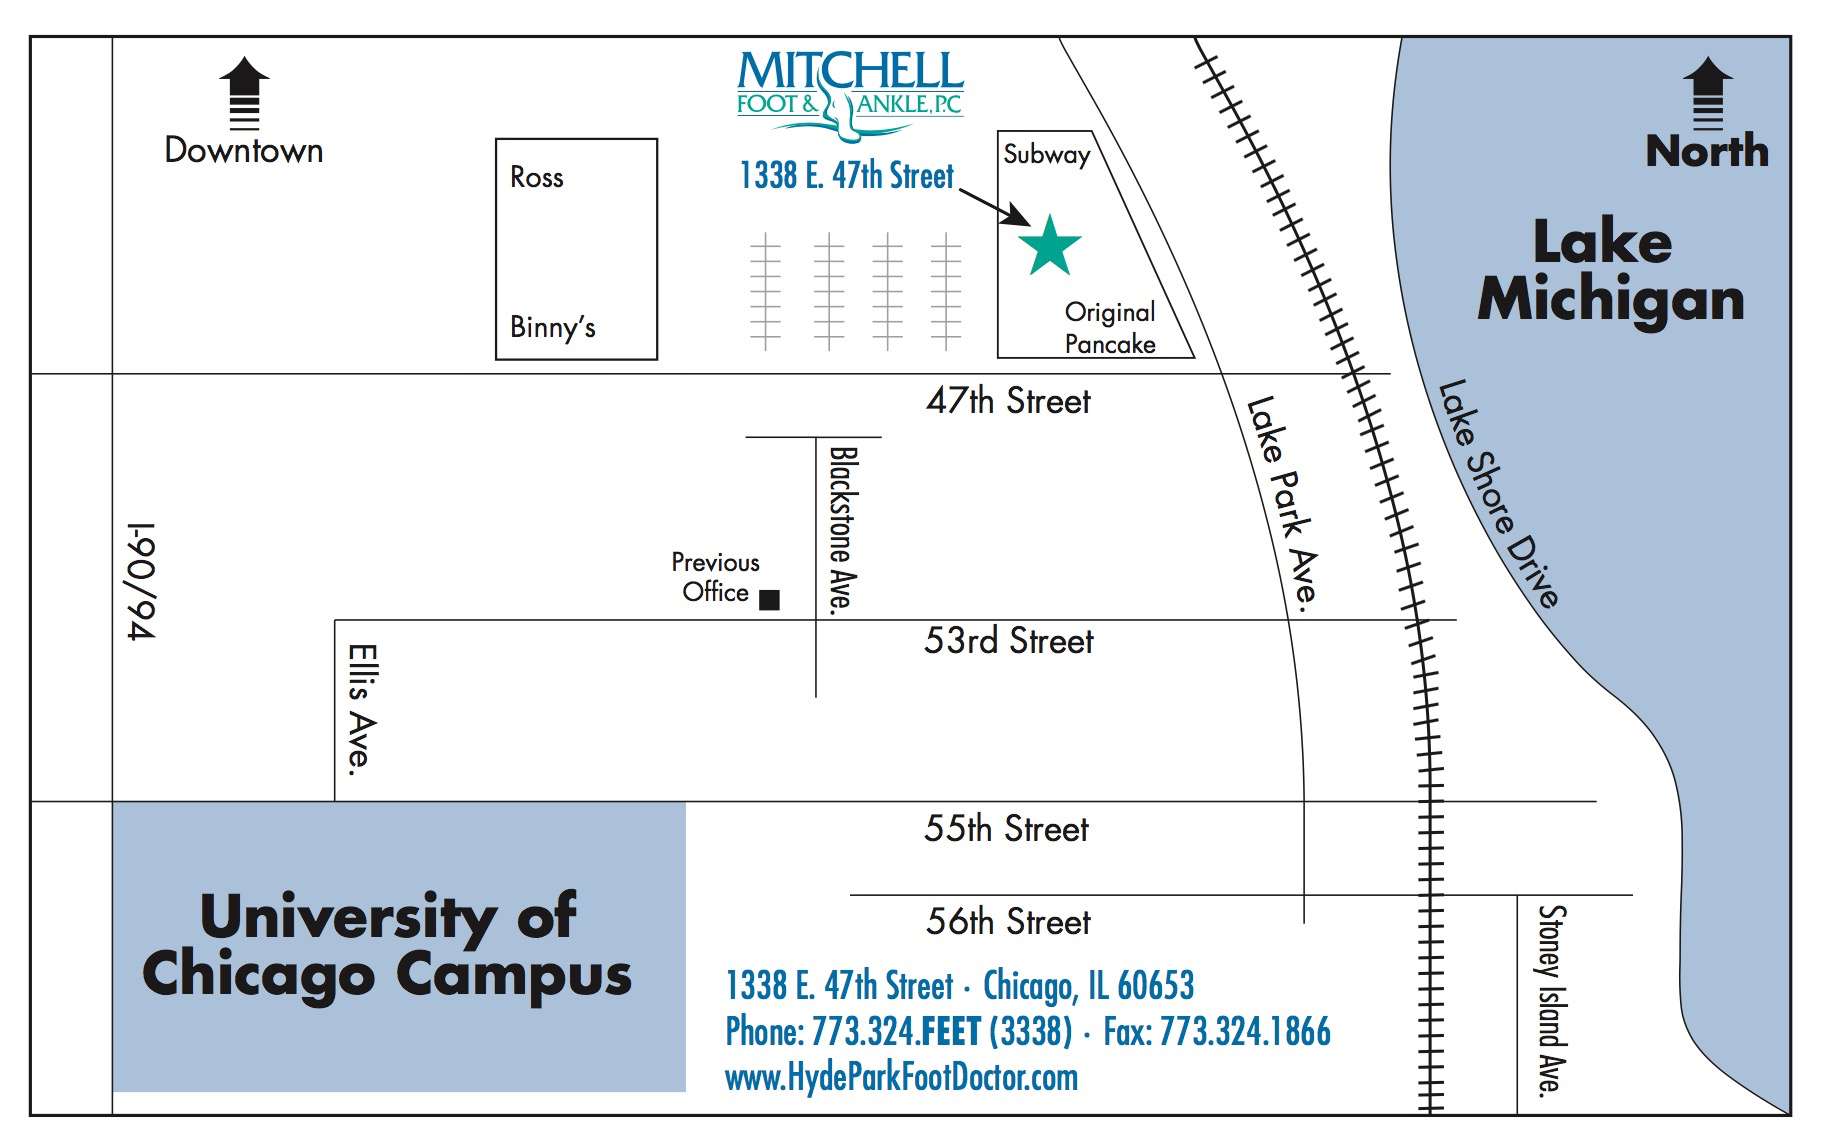 Map of Mitchell Foot & Ankle Clinic - Hyde park location.